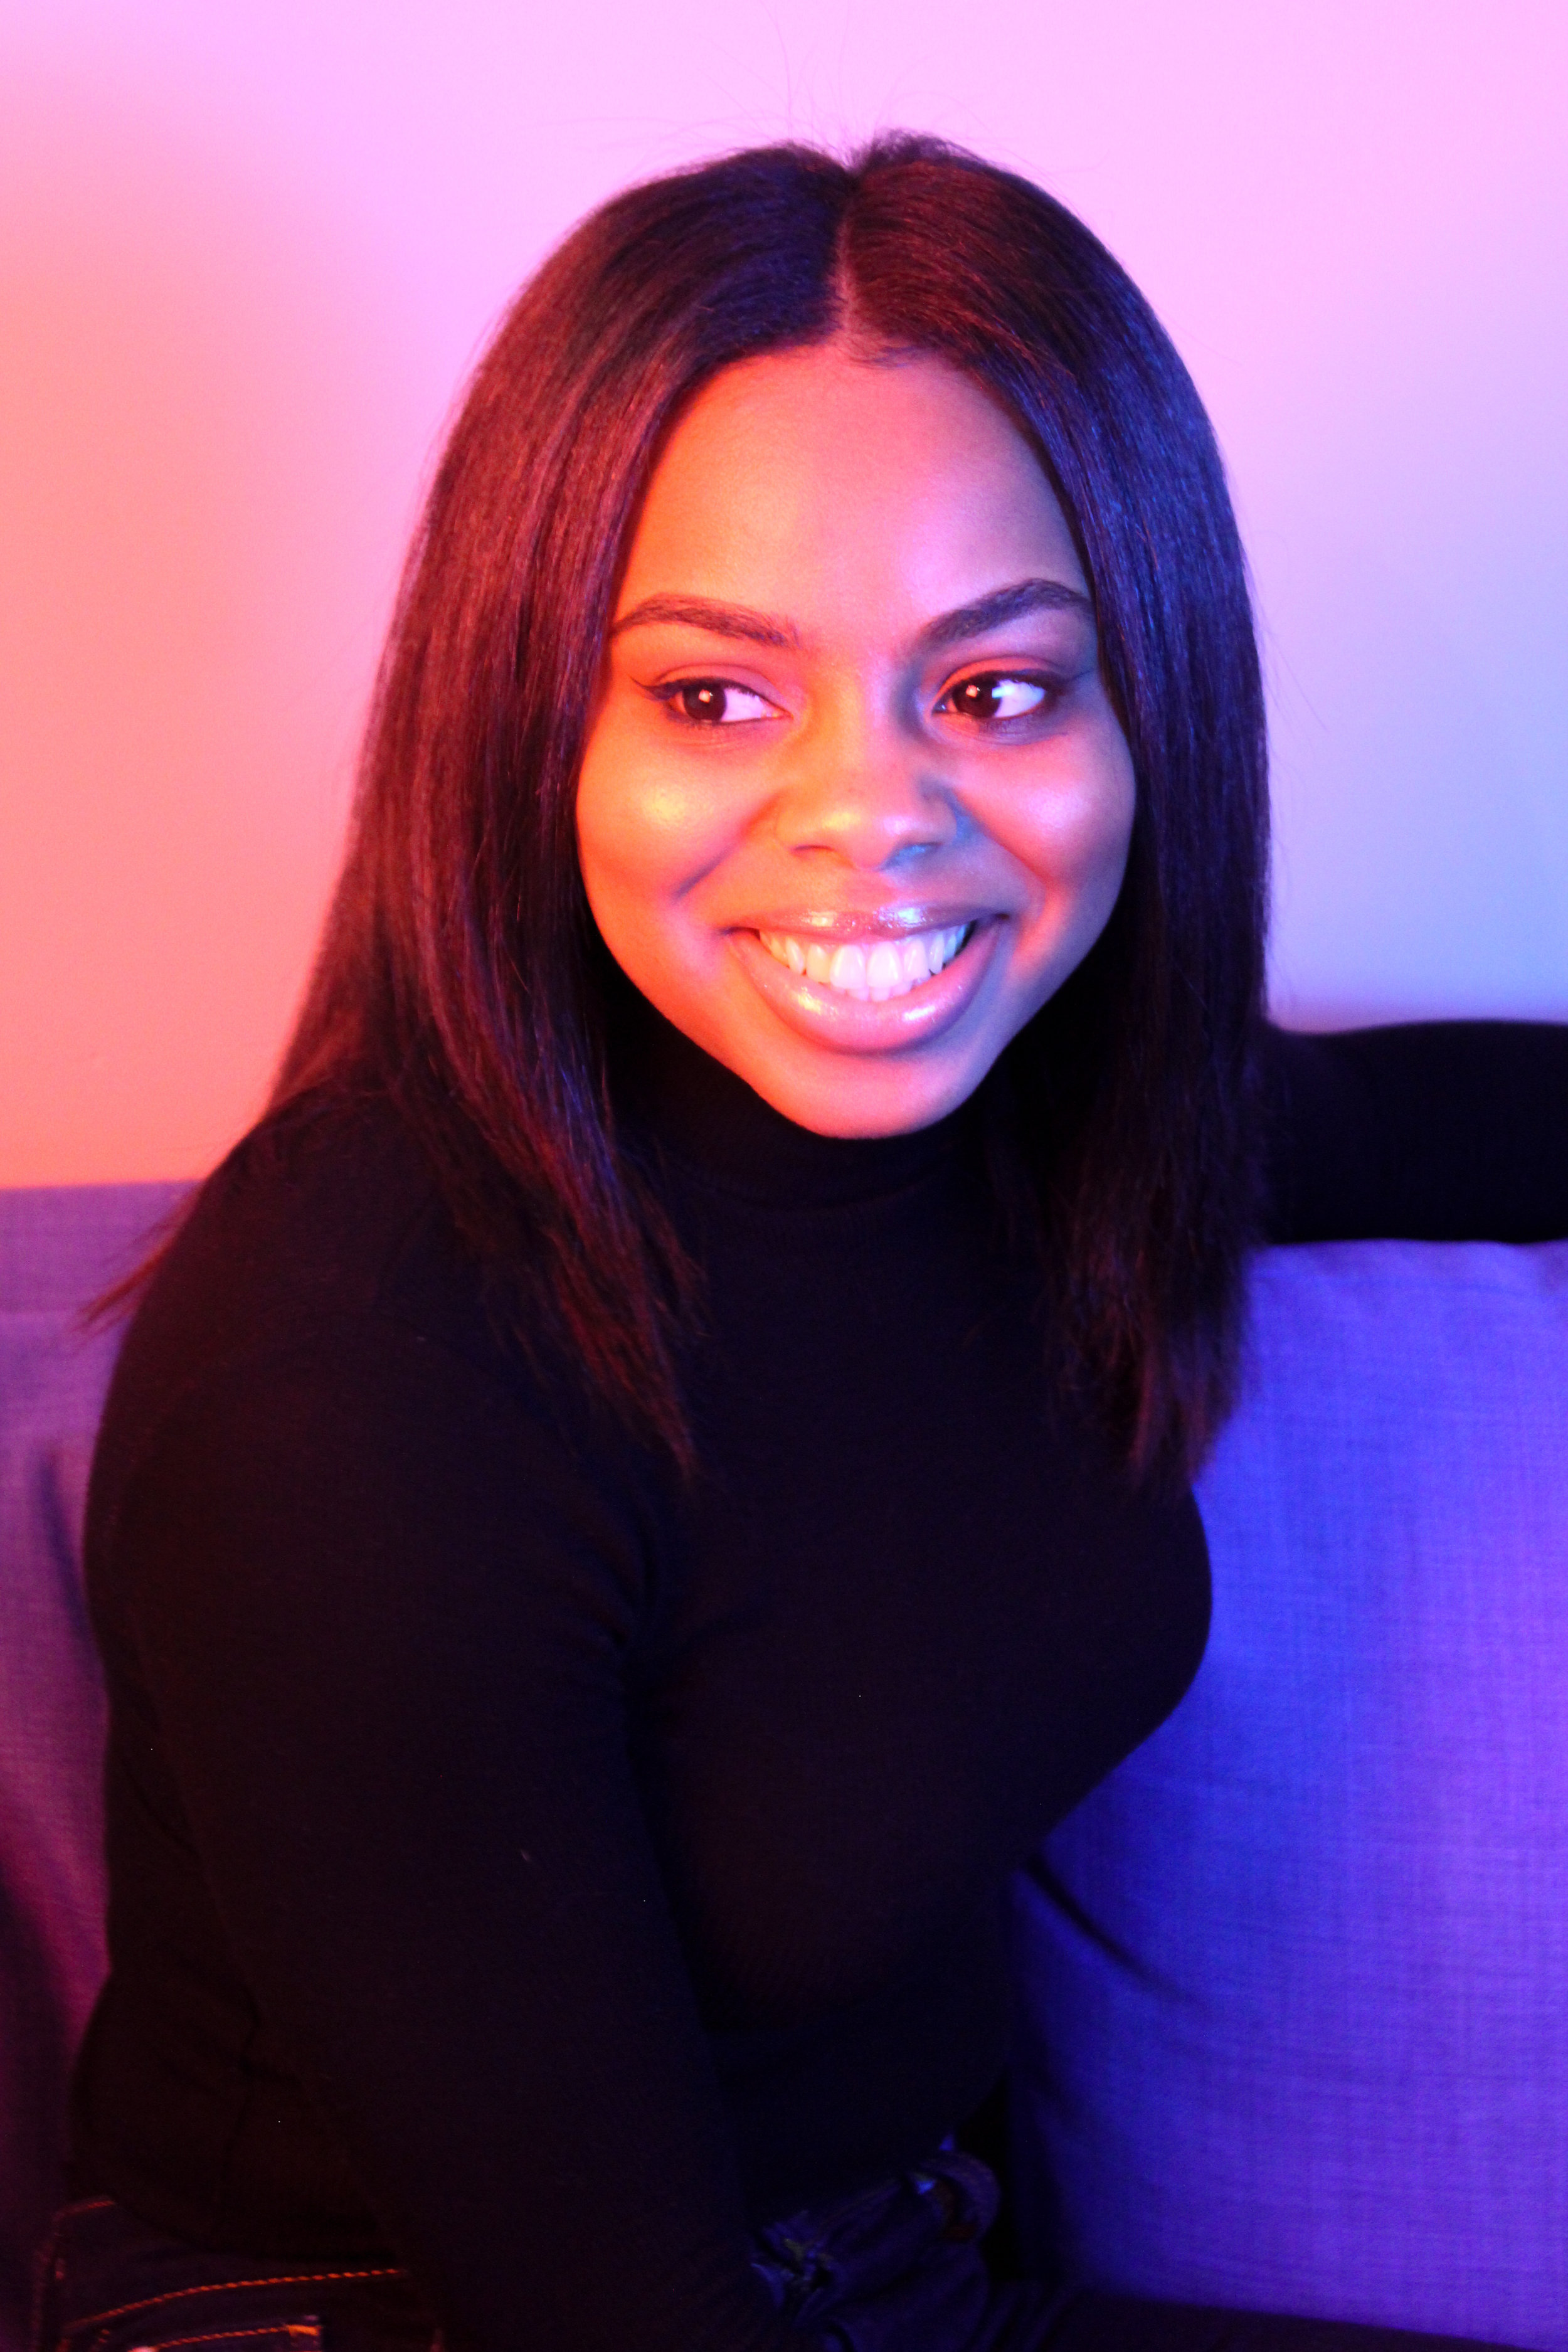 Alexis simmons - Age: 25What do you do? I'm a Consumer Marketing Manager for MTV/VH1/LogoWho is a woman around your age that is an inspiration to you and why? Jaisa Minor! Since the first day I met her in high school she's always been a person who says exactly what they want to do and does it with grace. No excuses, if she wants something, she's going to achieve it.Instagram: @_alexisbreanne